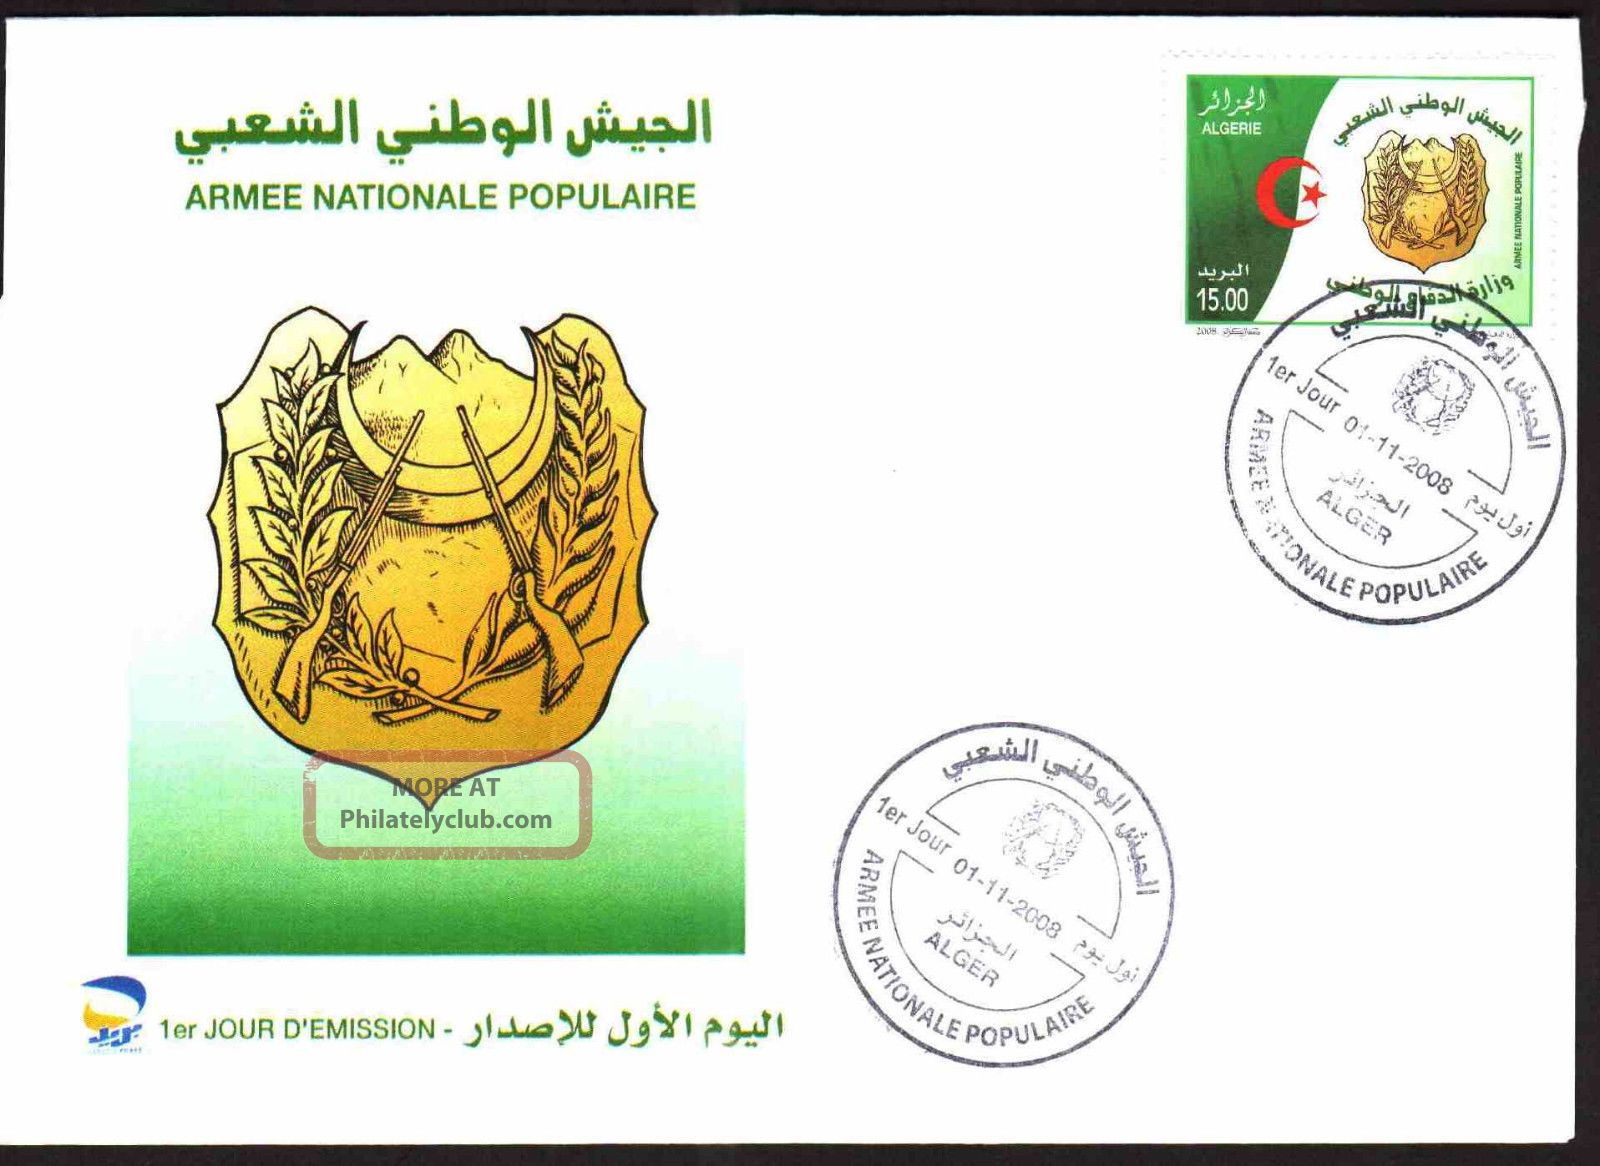 Algeria 2008 - National Popular Army (1v) - Fdc,  With Topical Cancel - Topical Stamps photo